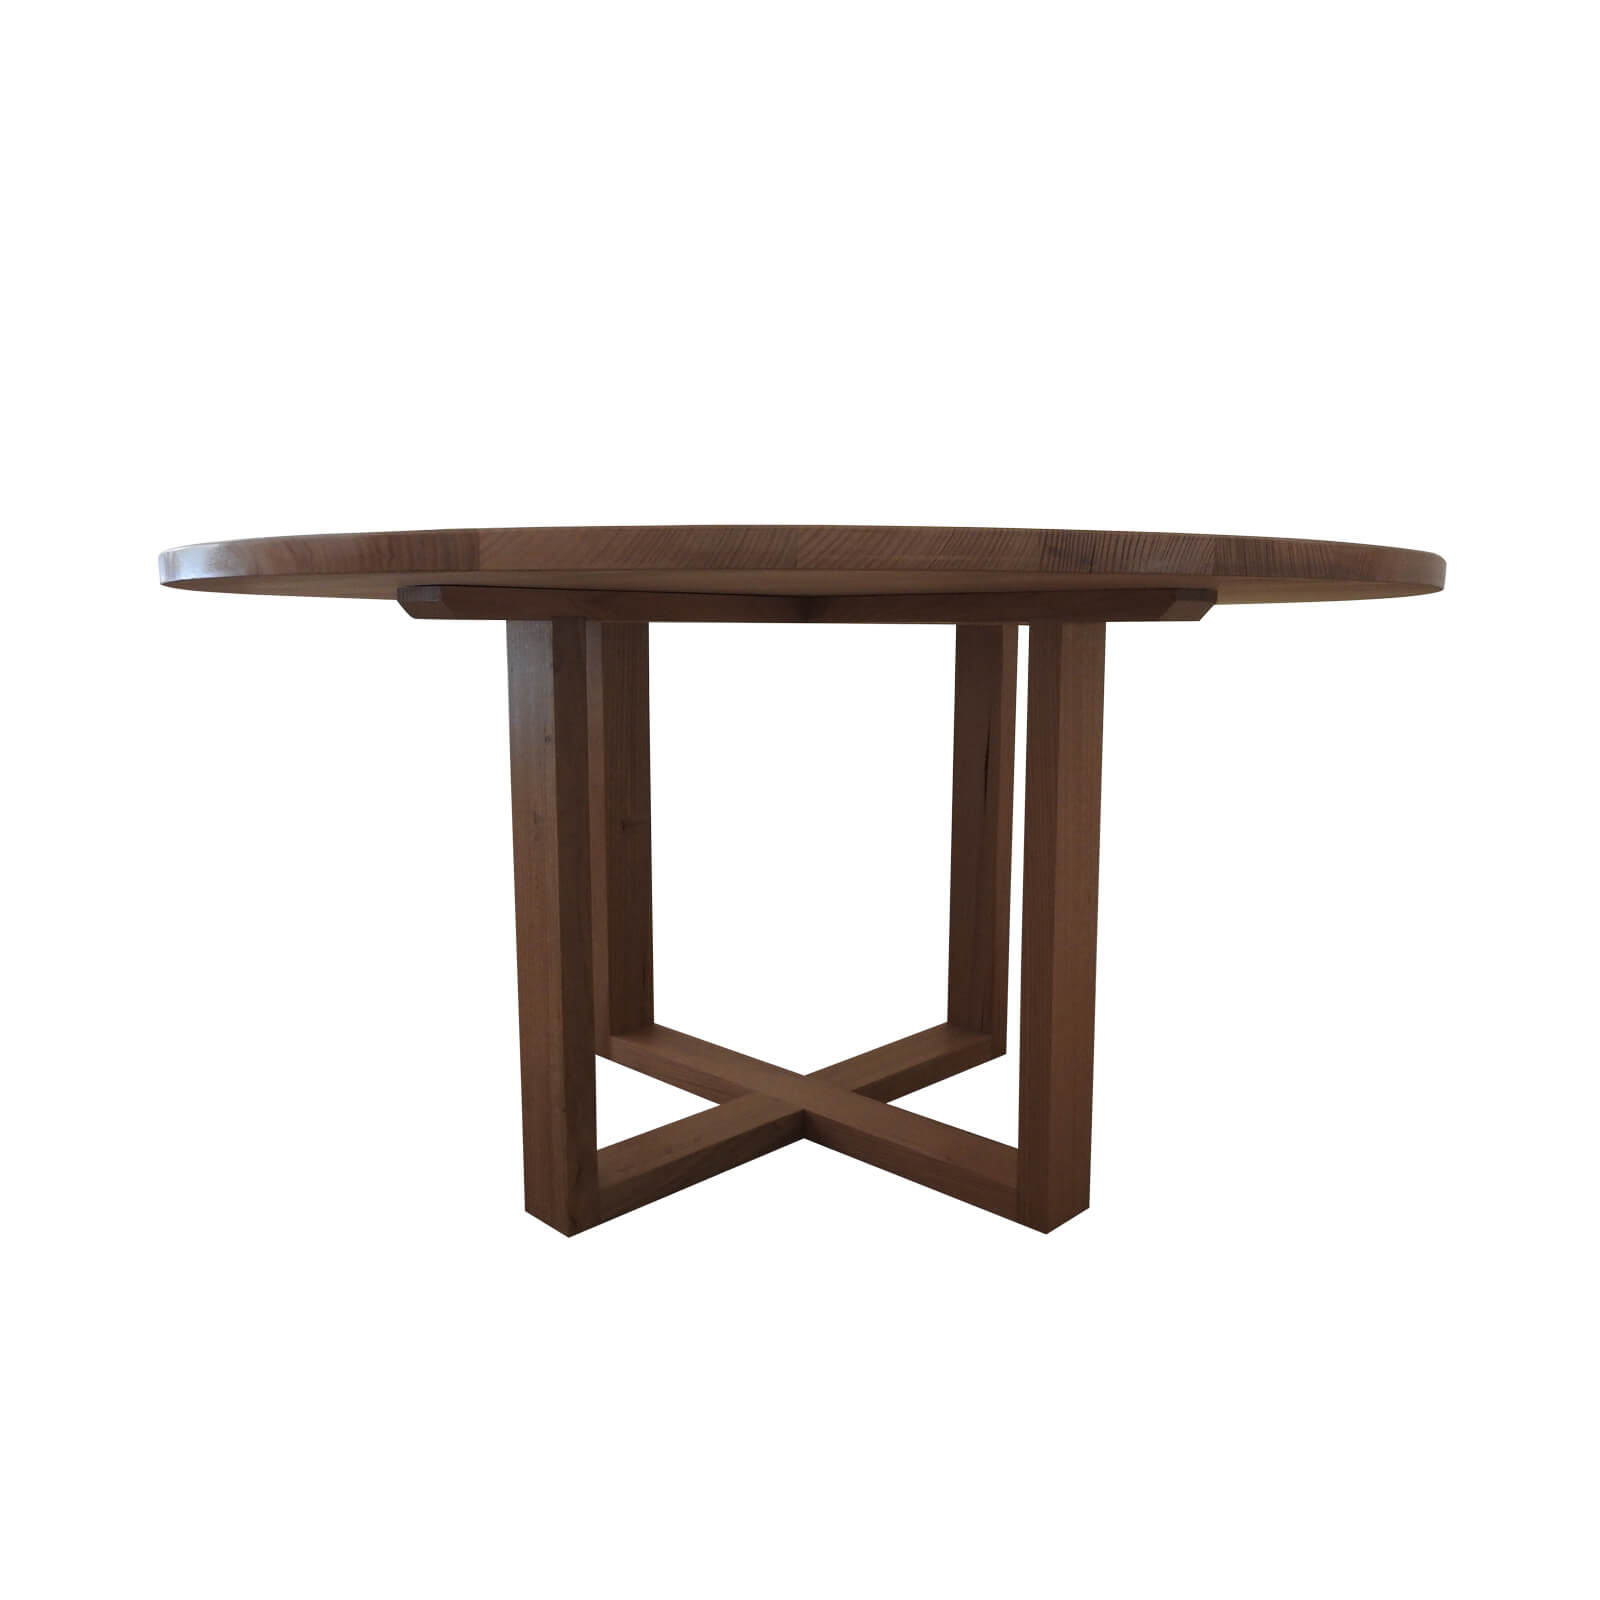 Two Design Lovers Cabarita designs Reverie Victorian Ash round dining table